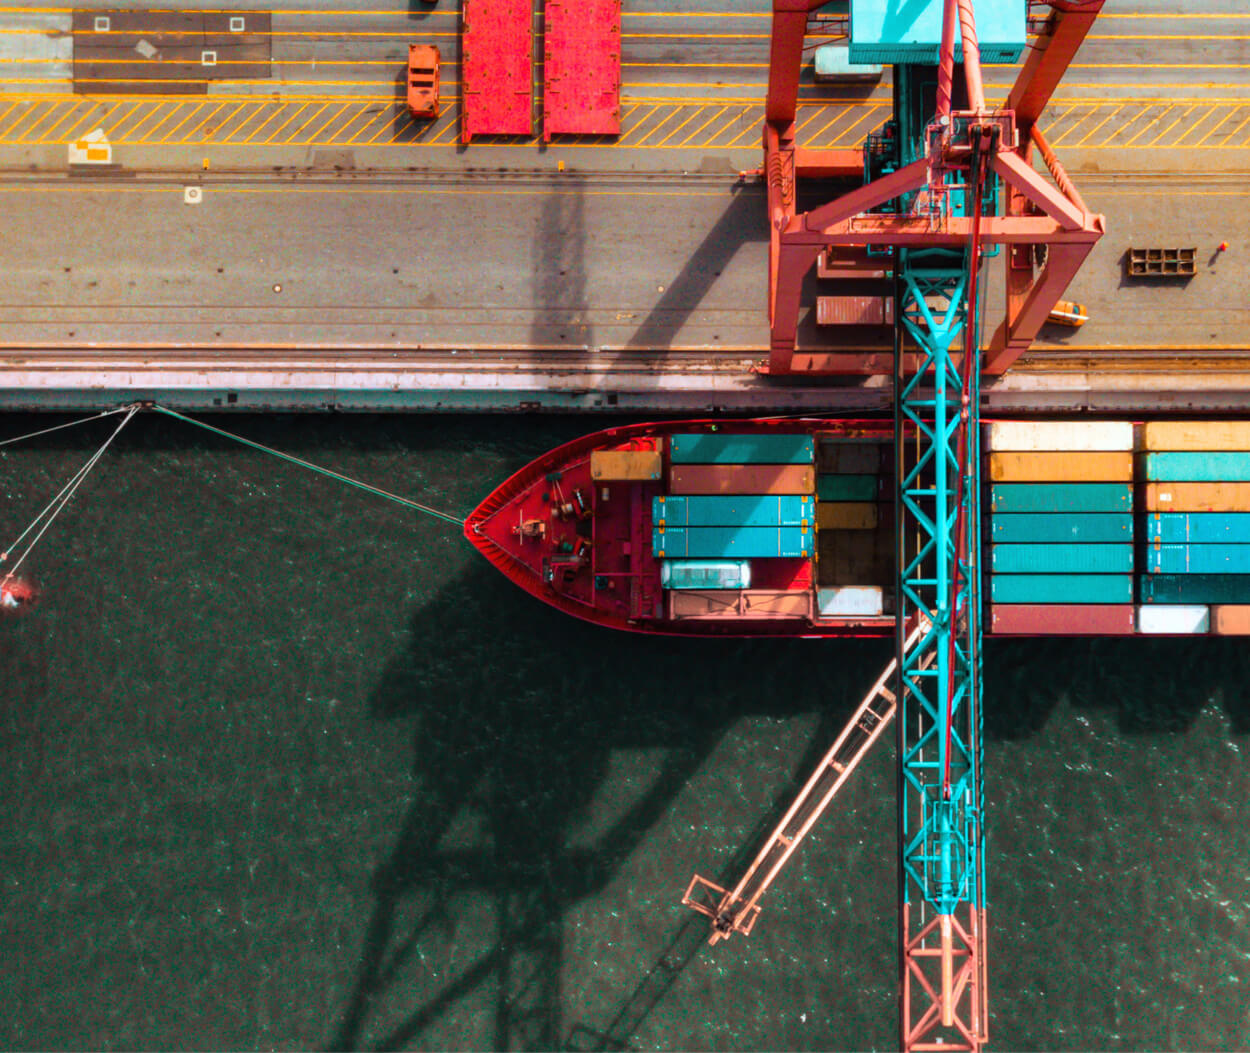 Aerial view of a container crane and a cargo ship